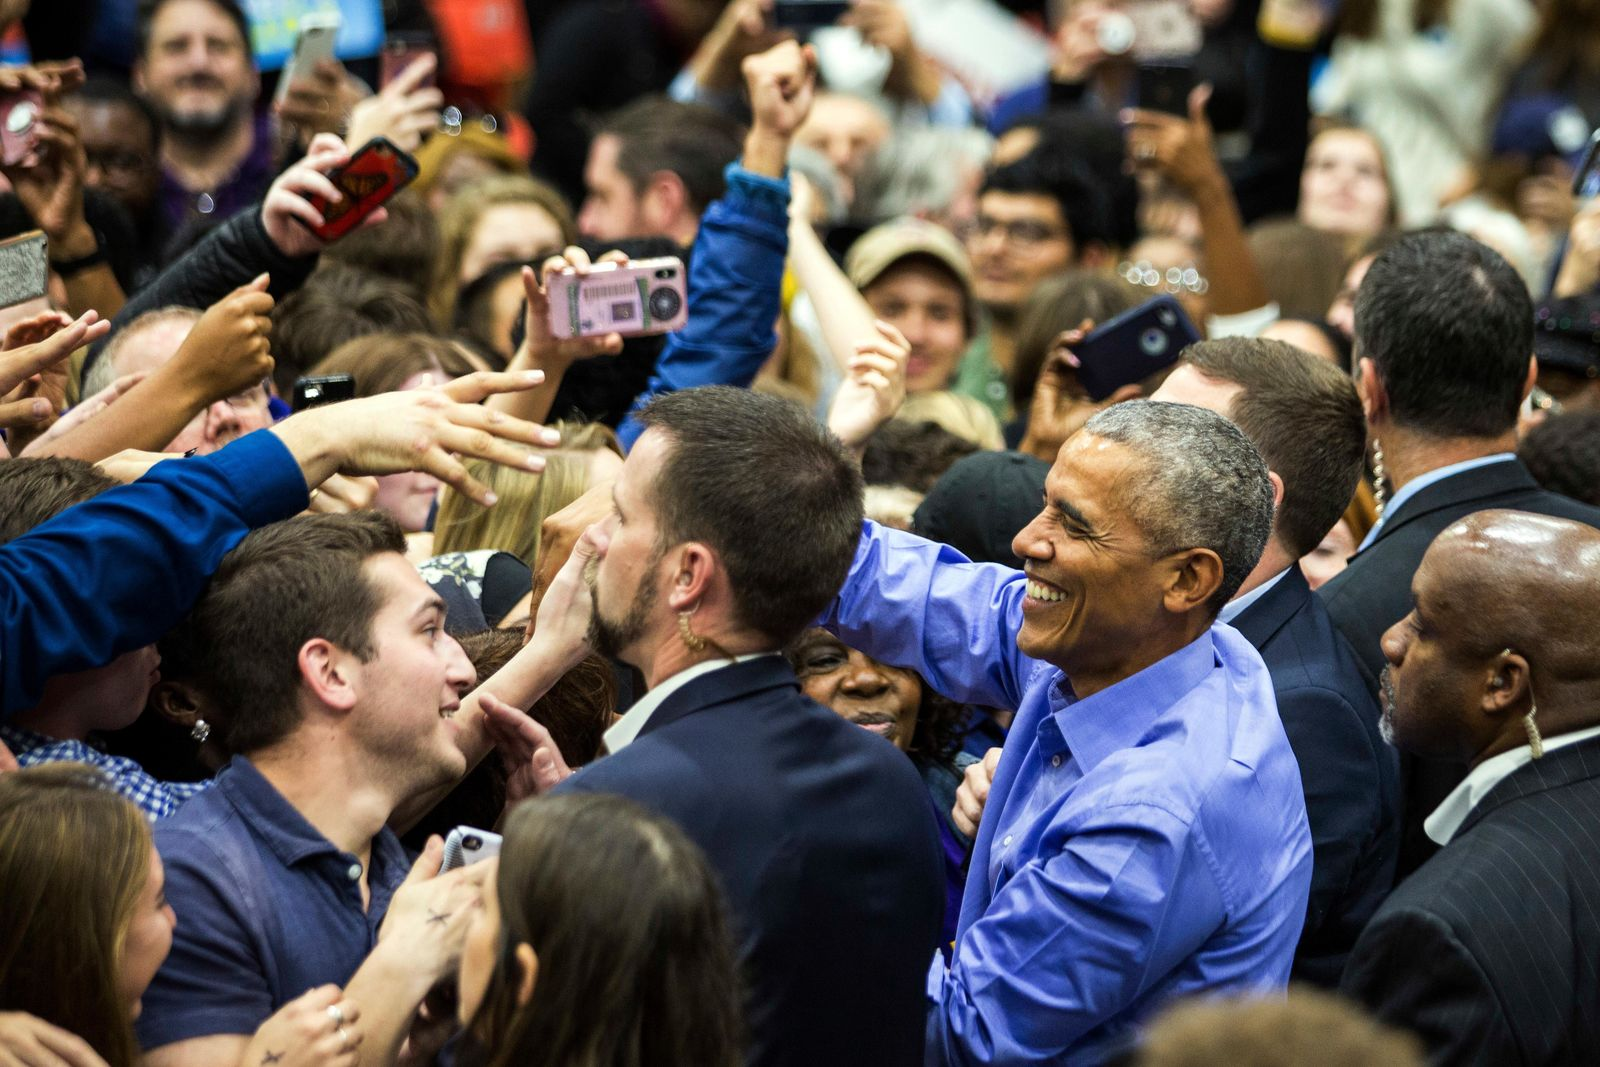 Former President Barack Obama greets people at a rally for Illinois Democrats, Sunday, Nov. 4, 2018, at the University of Illinois at Chicago, in Chicago. (Ashlee Rezin/Chicago Sun-Times via AP)